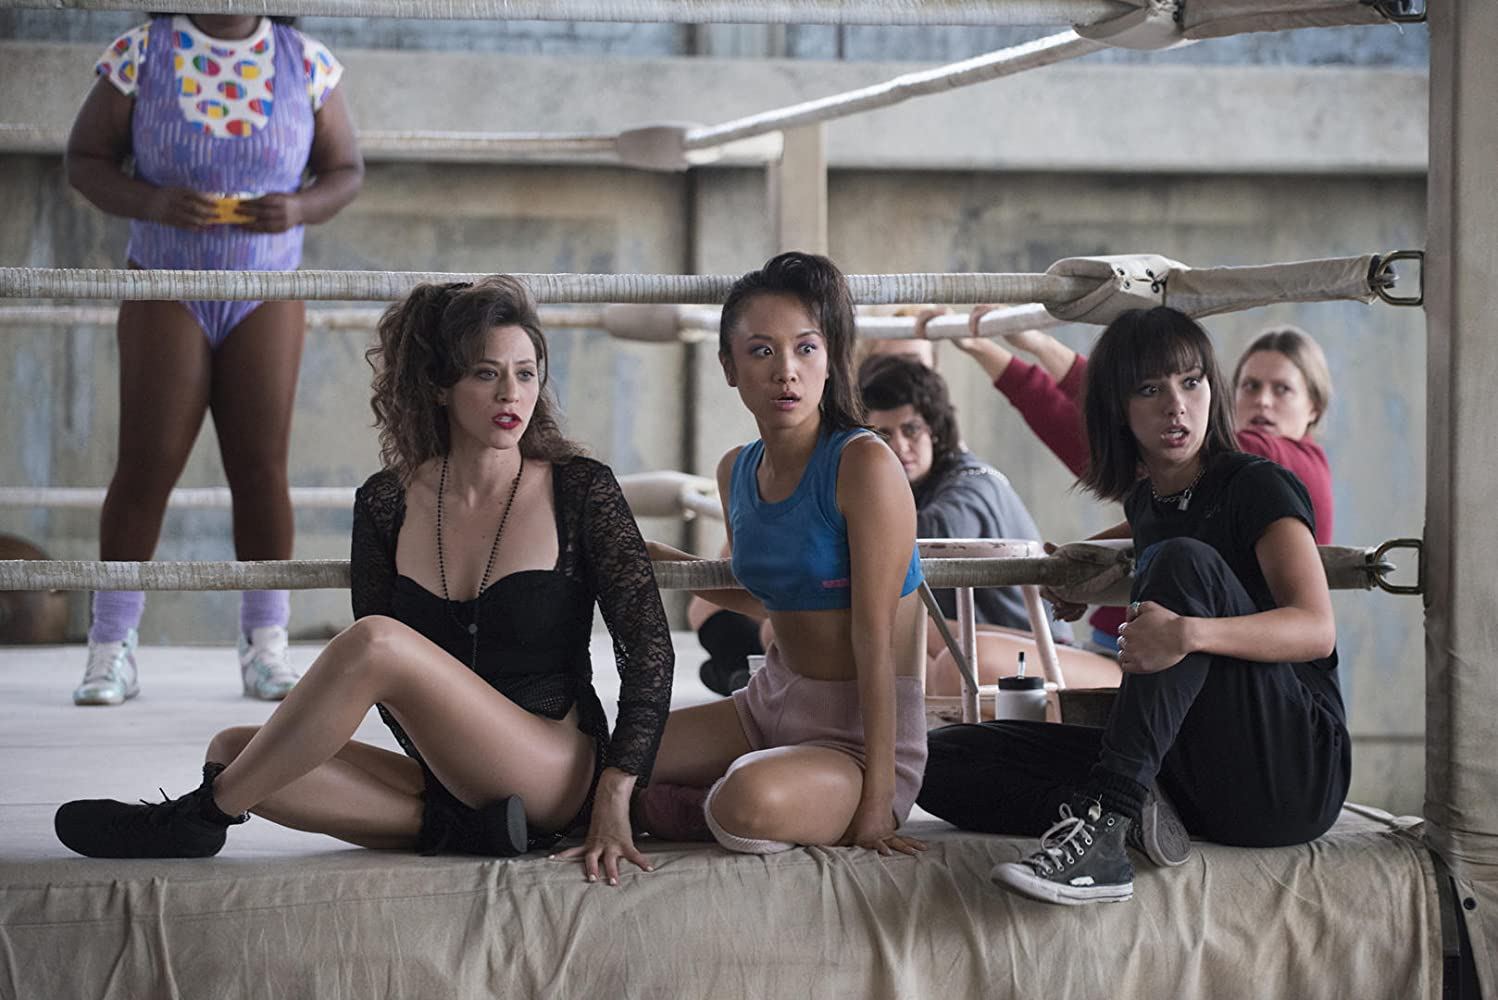 Jackie Tohn as Melrose on Glow. With Ellen Wong, Britt Baron, Mariana Palka & Rebekka Johnson.